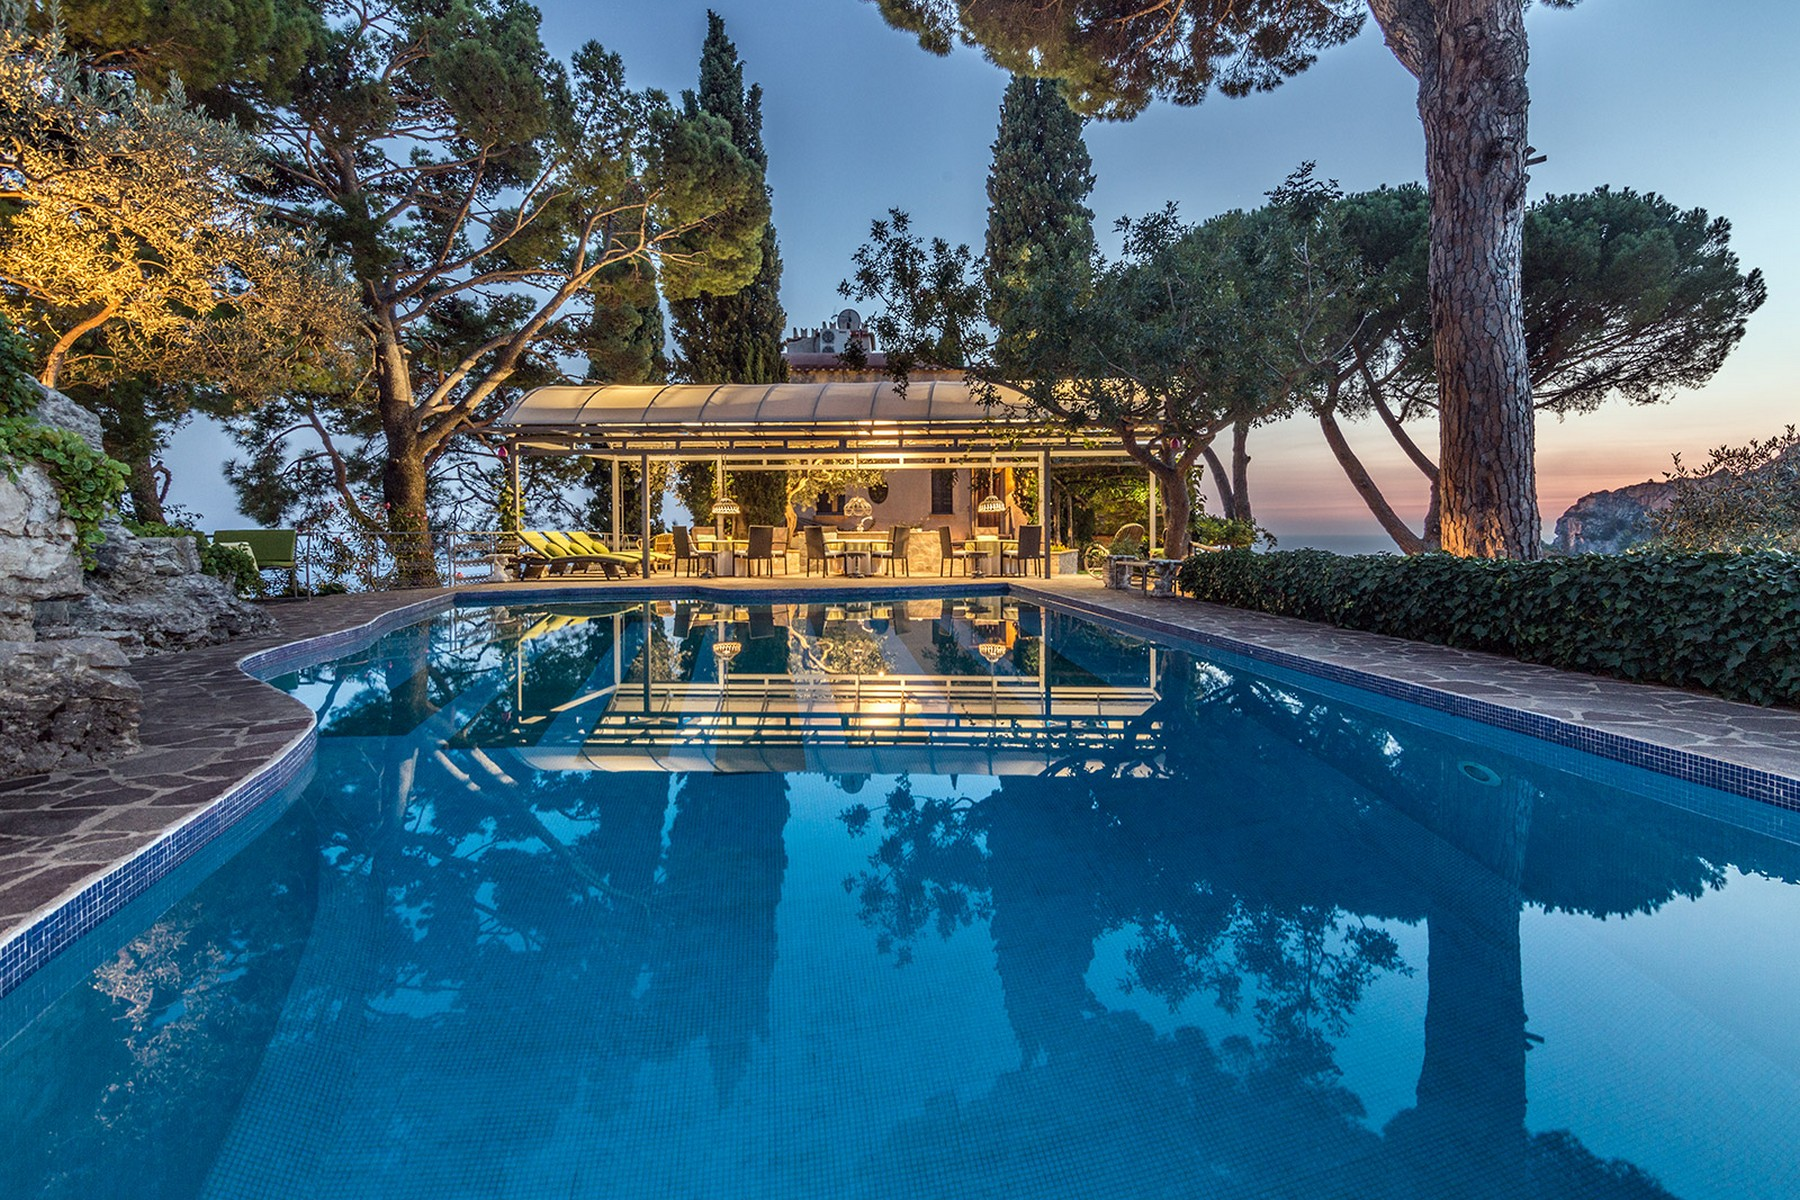 Single Family Home for Sale at Torre di Civita, stunning property by the Amalfi Coast Ravello, Salerno Italy